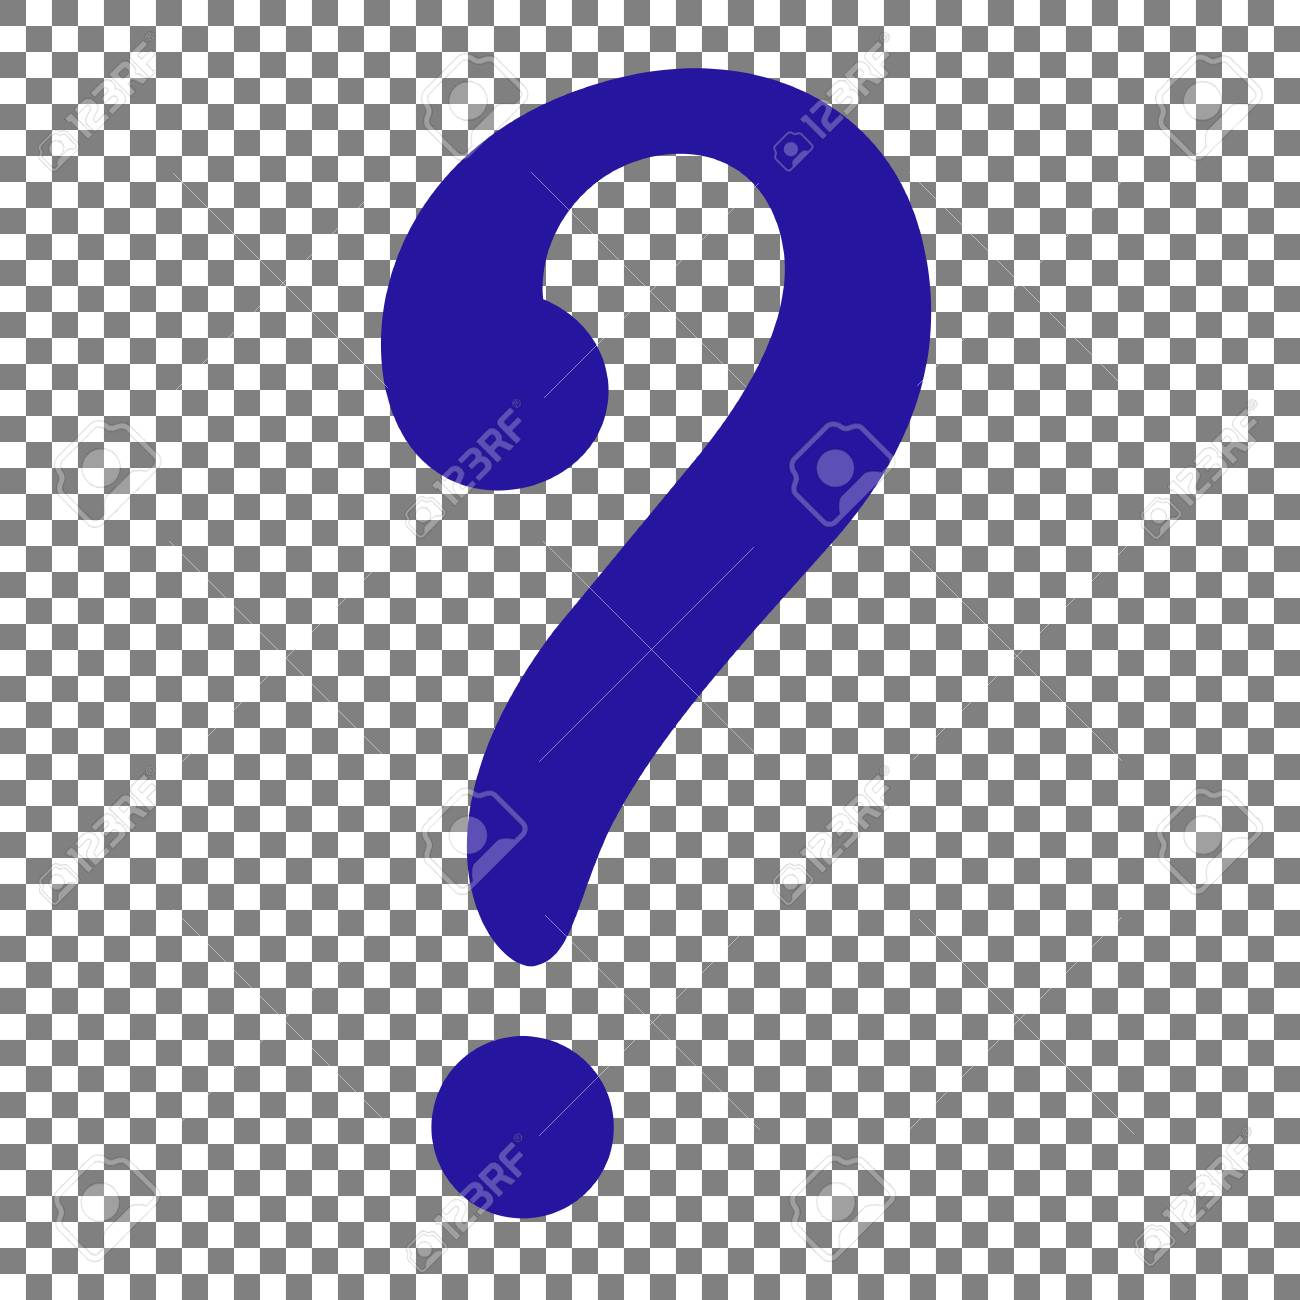 Question Mark Sign. Blue Icon On Transparent Background. Royalty ...